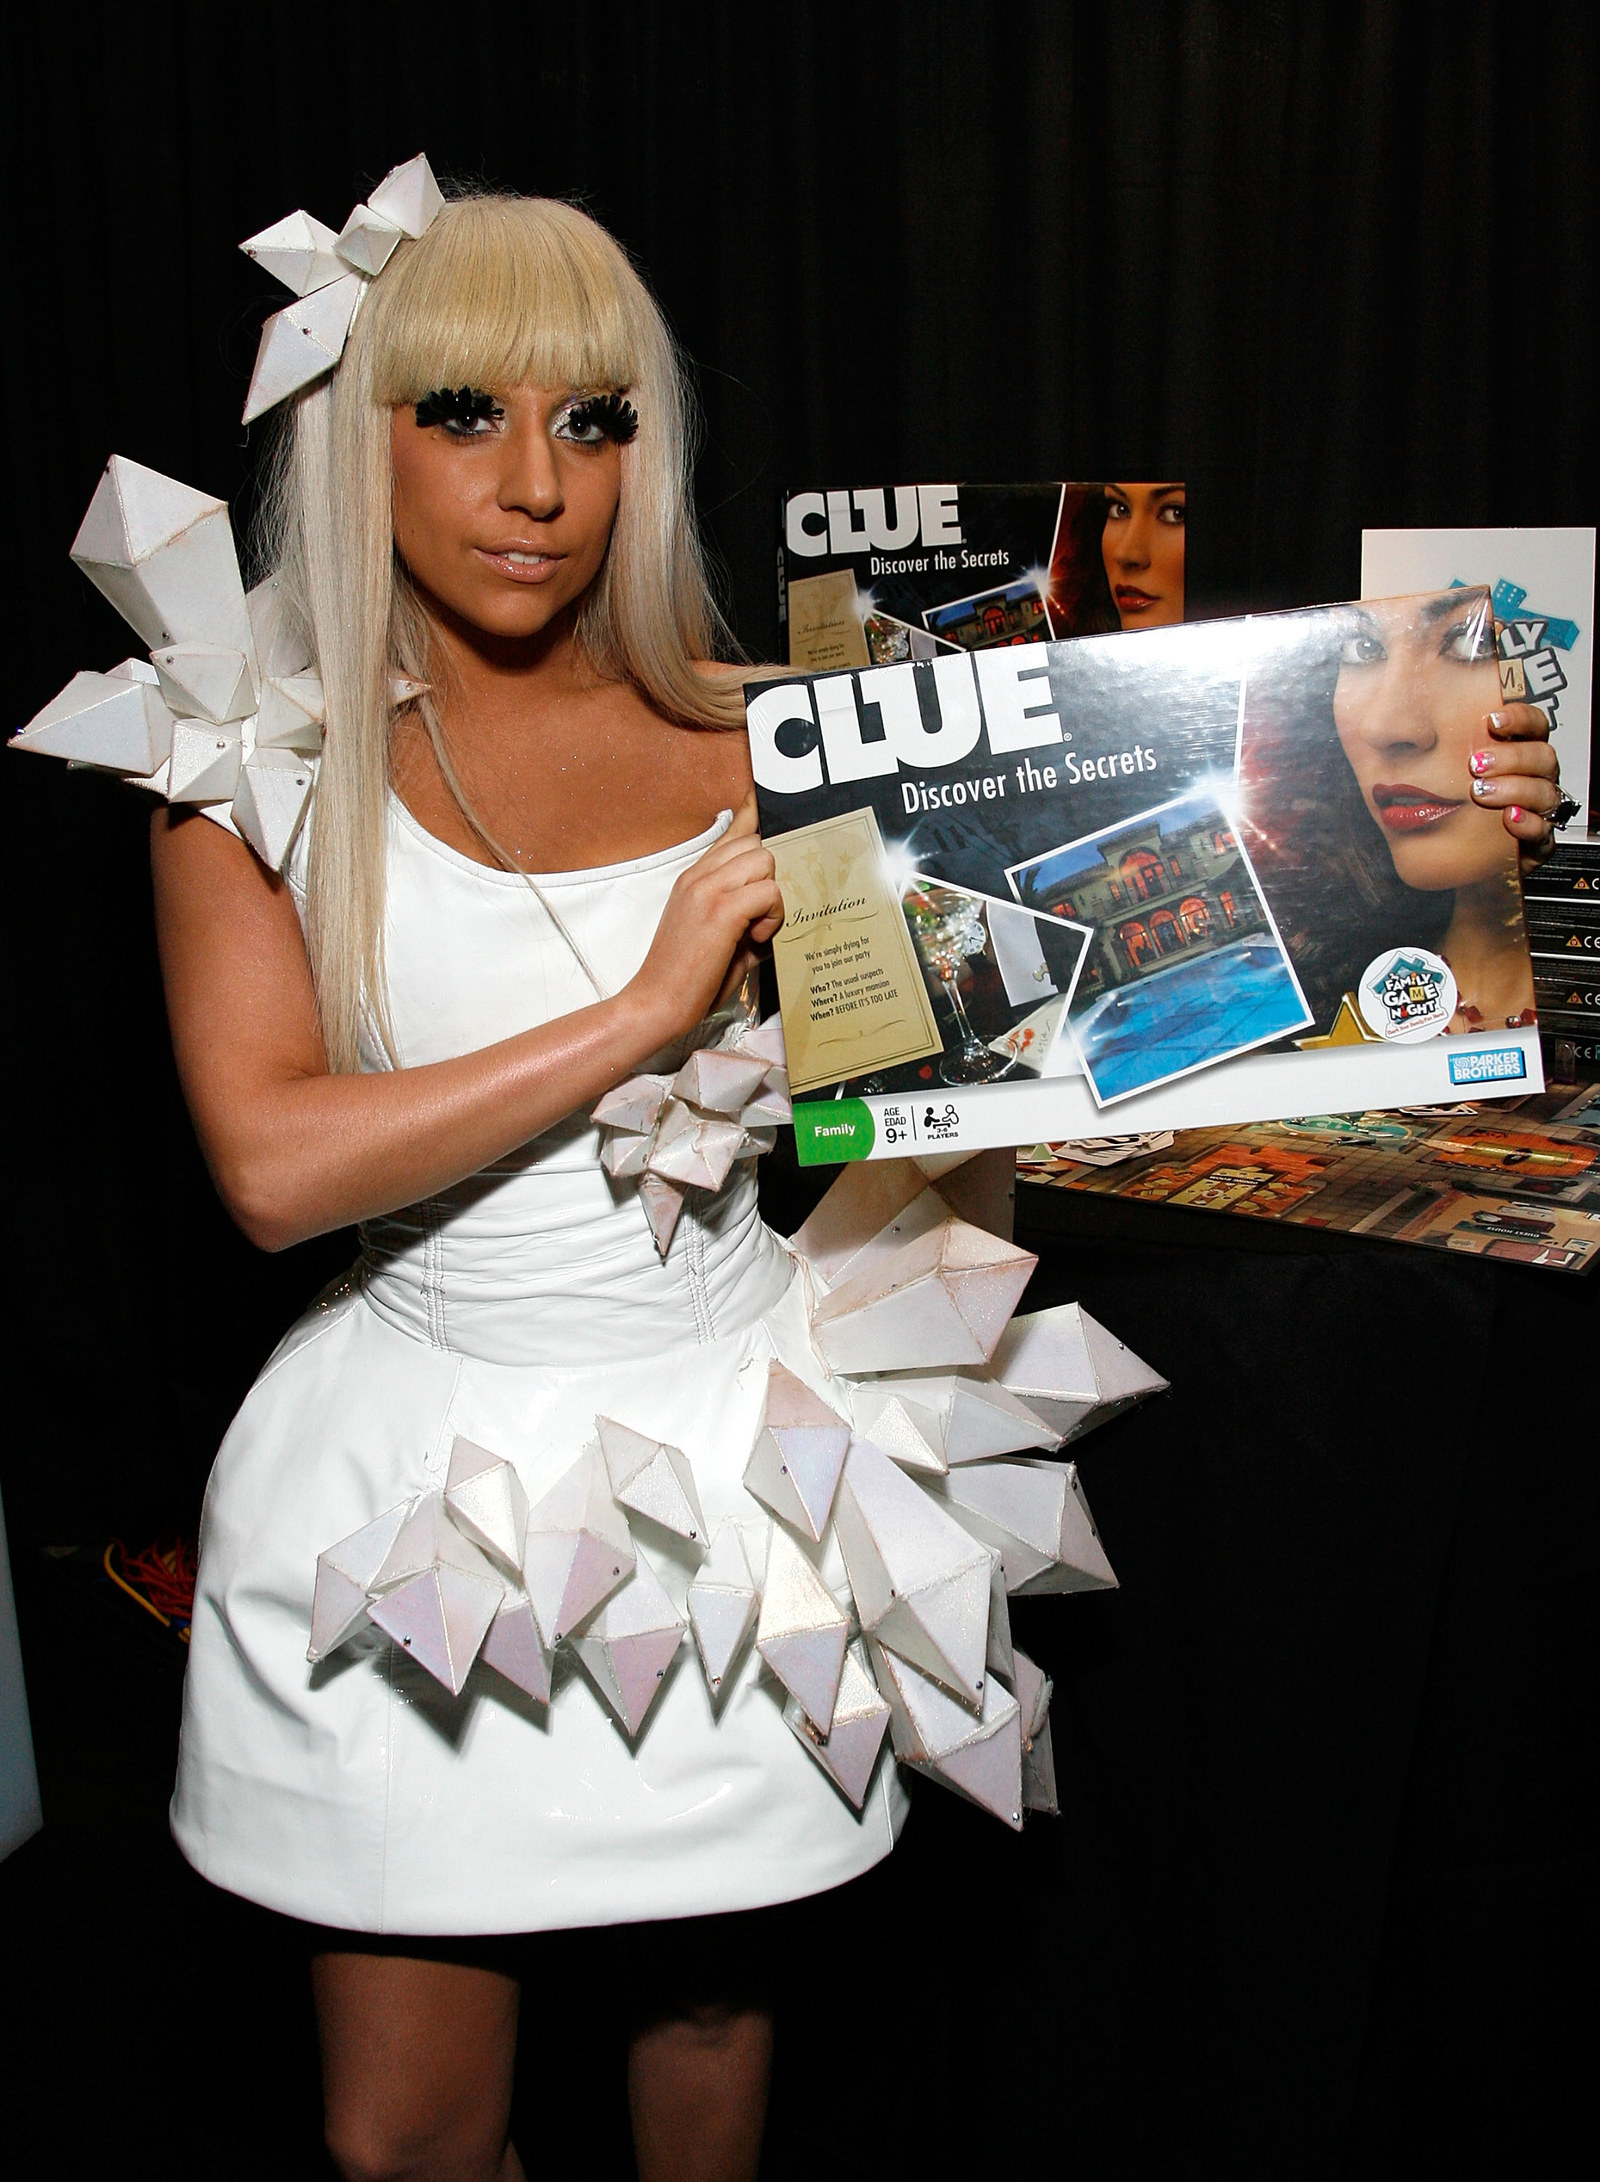 Lady Gaga and the game Clue.